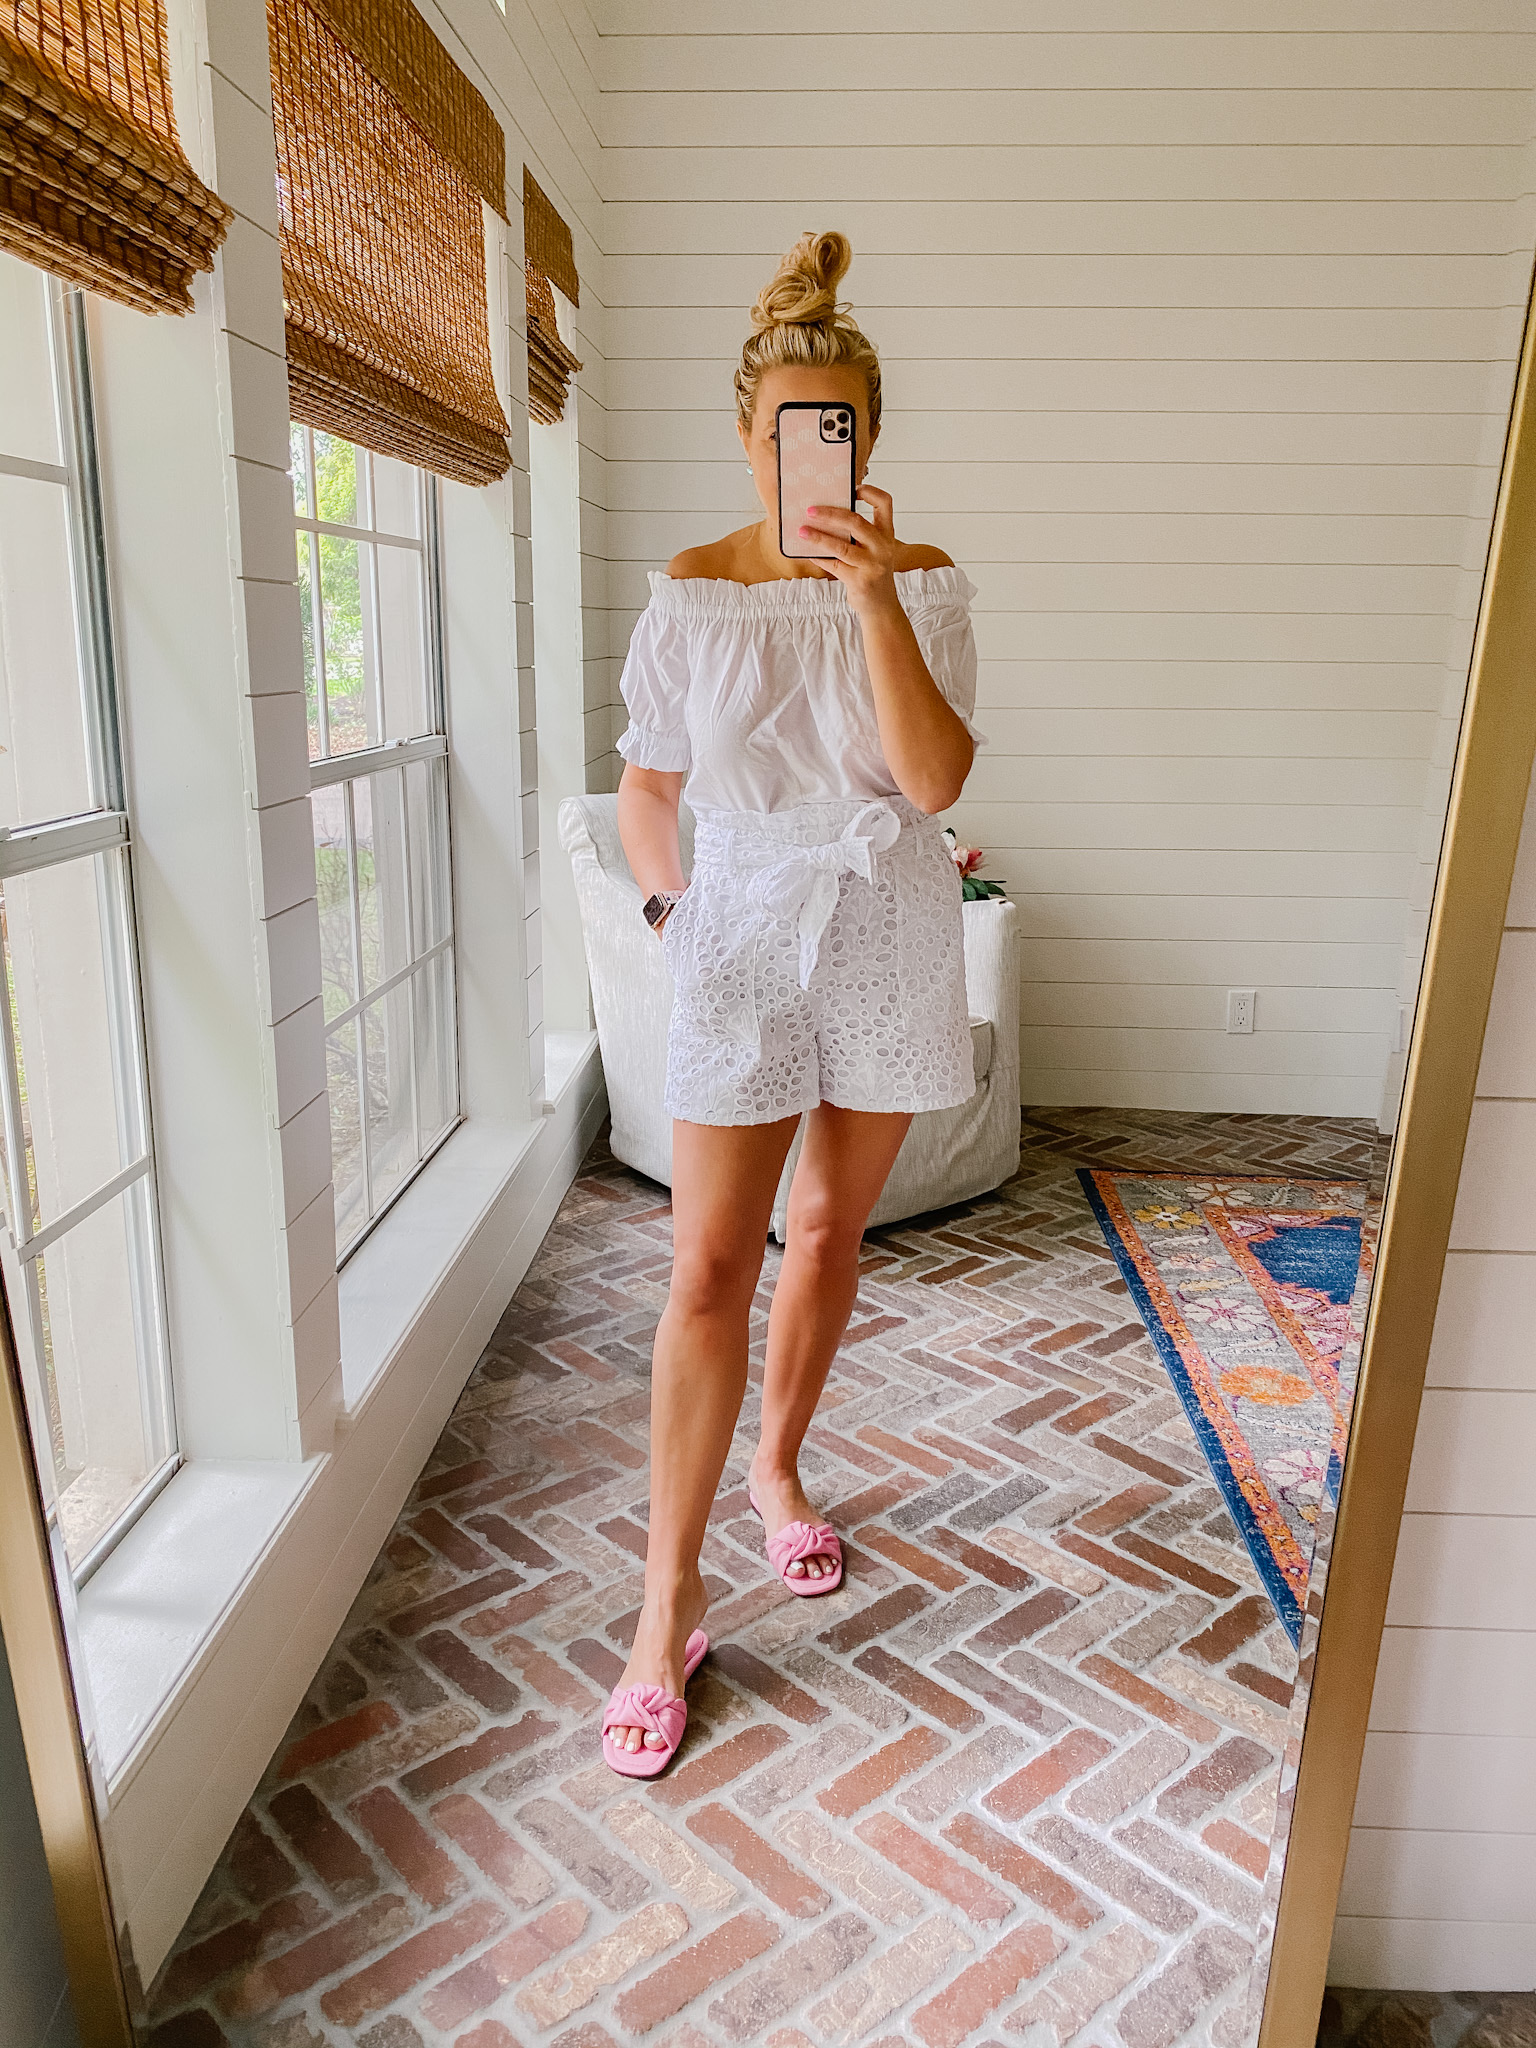 Express New Arrivals by popular Houston fashion blog, The House of Fancy: image of a woman wearing a Express white off the shoulder top with white eyelet paper bag shorts and pink slide sandals.